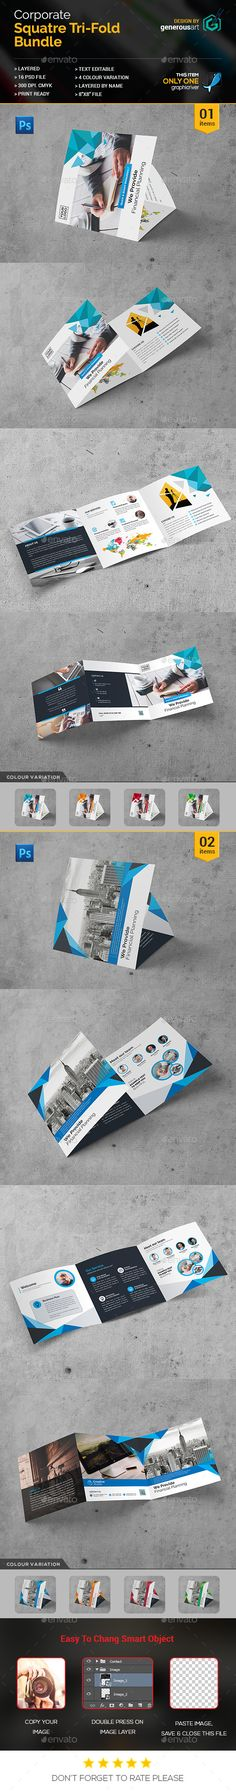 2 Square Tri-Fold Brochure Templates PSD. Download here: http://graphicriver.net/item/bundle_square-trifold-2-in-1/16816158?ref=ksioks